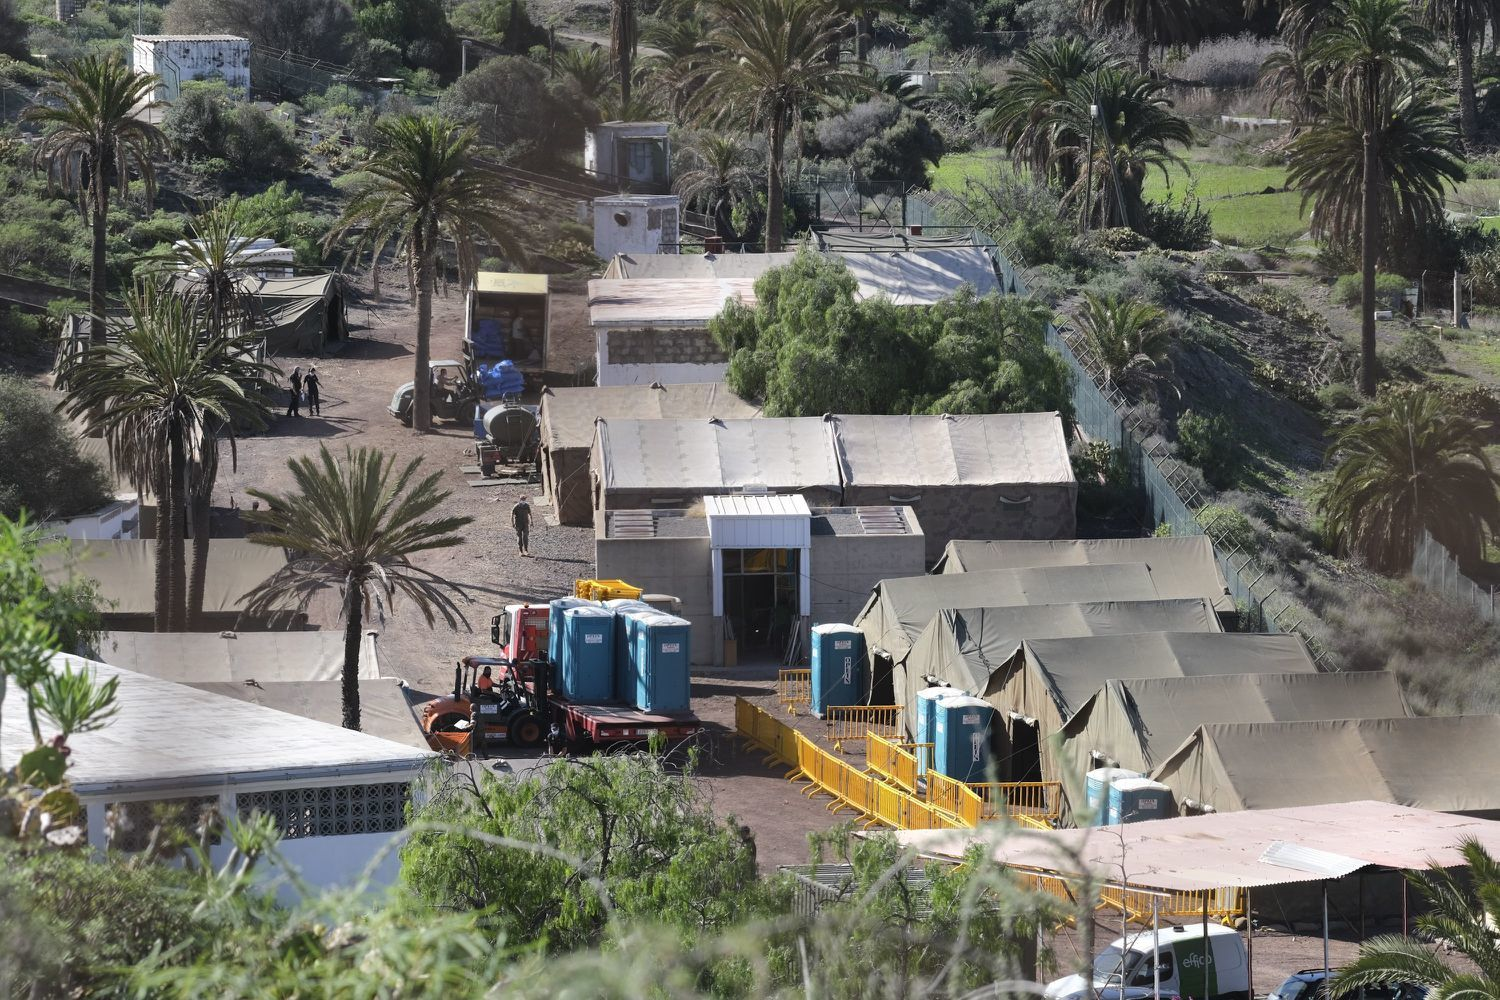 The Camp Installed in Barranco Seco, in Las Palmas de Gran Canaria, Where Part of the Migrants from the Arguineguin Port Are Expected, (Angel Medina, EFE,